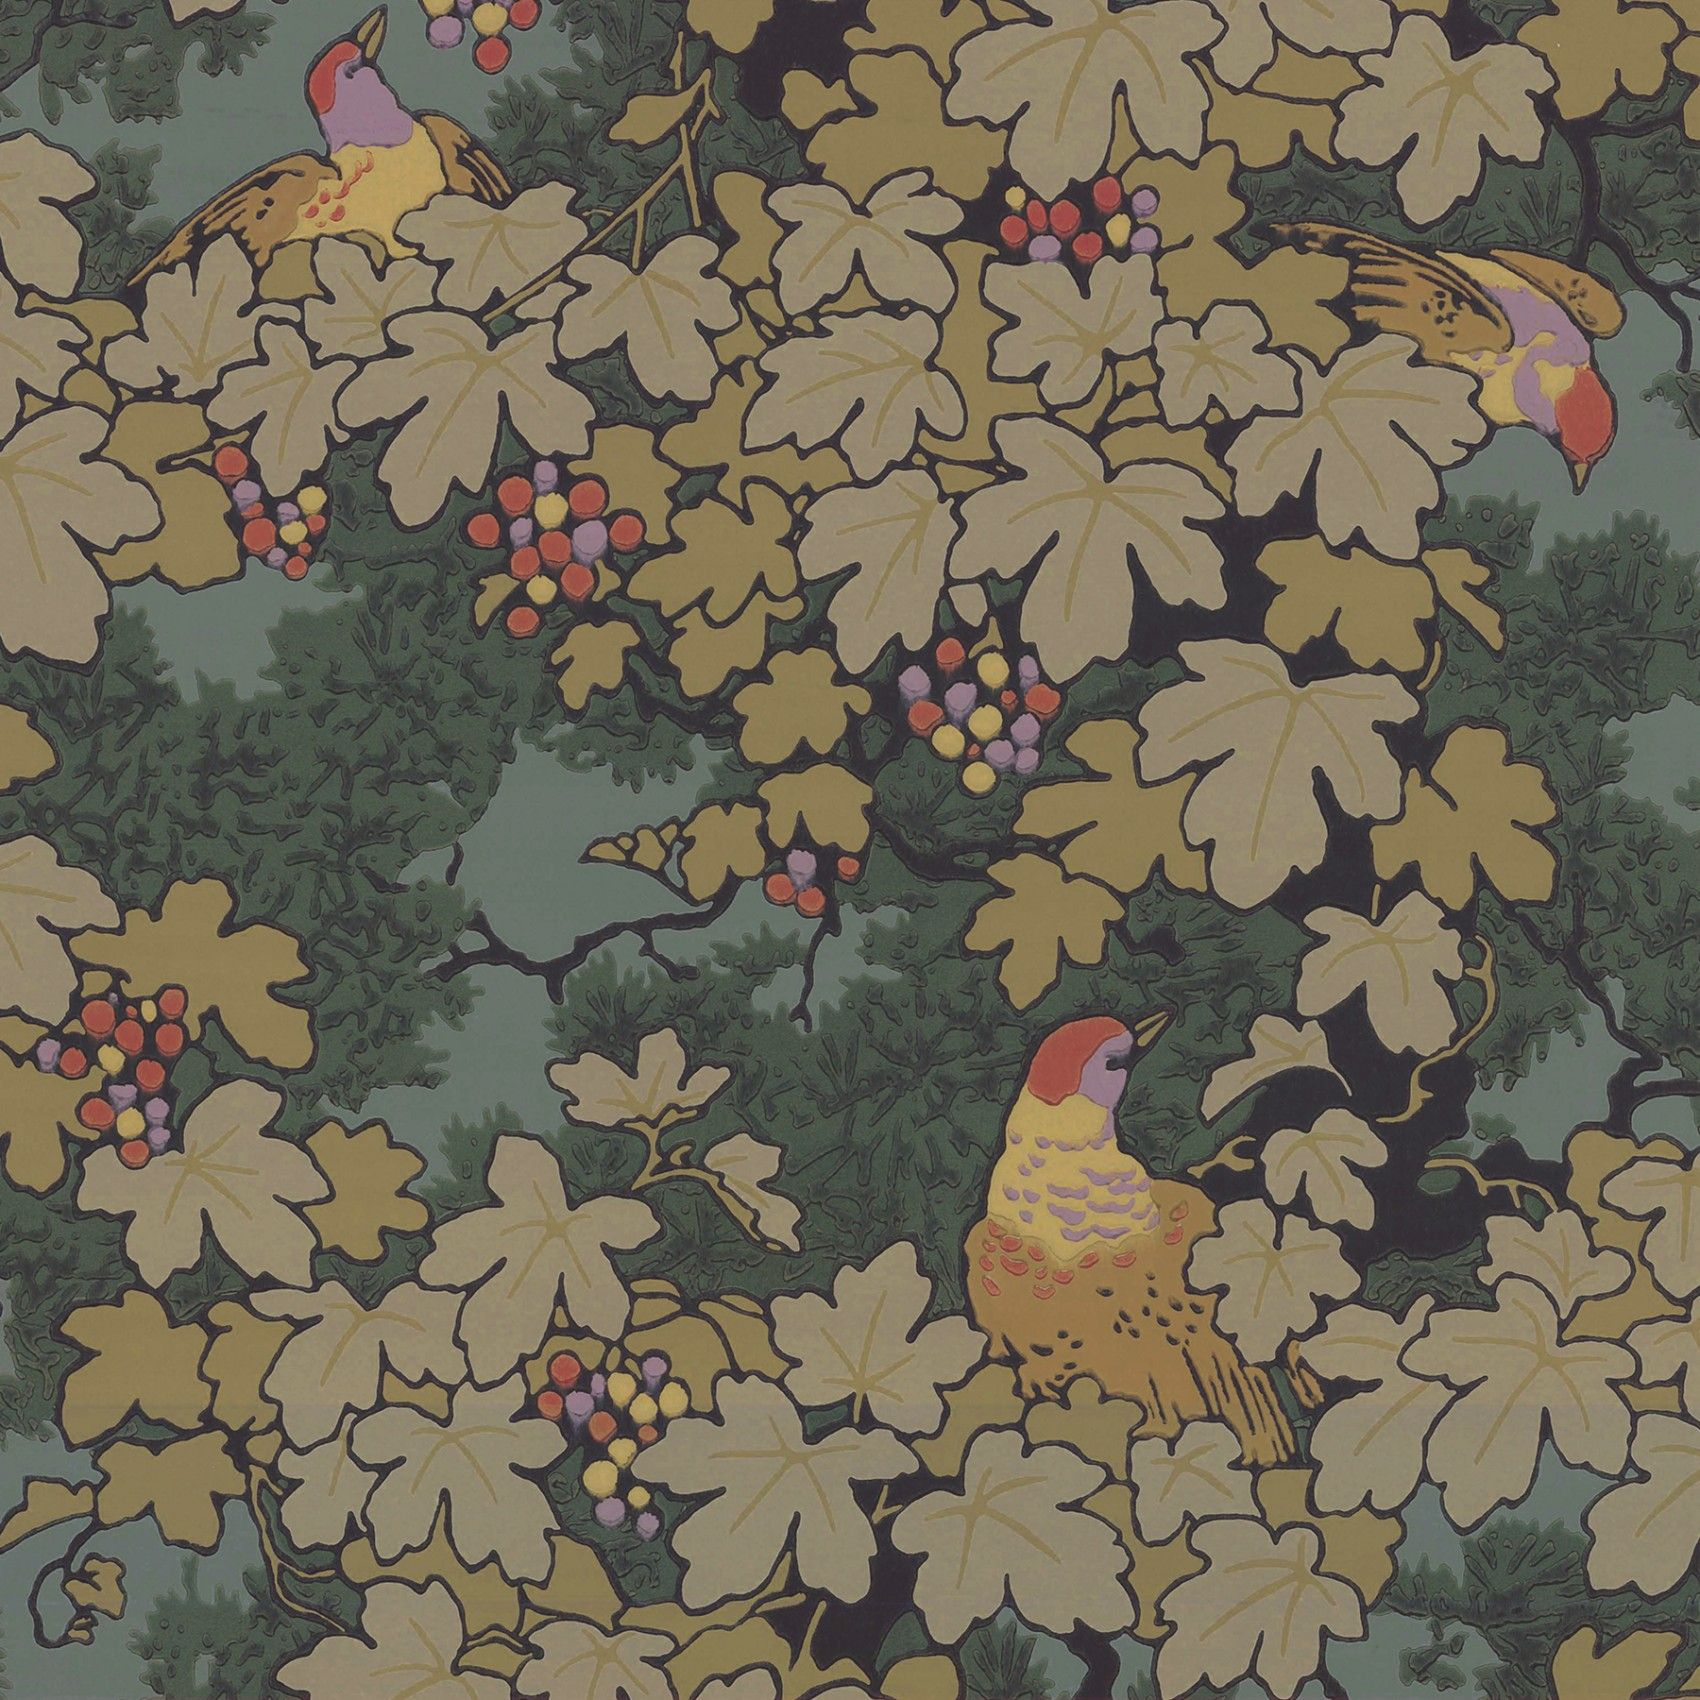 Contemporary Mercia Vines In Deep Blue Botanical Birds And Bees Wallpaper For Sale Wallpaper Vines Vintage Wallpaper